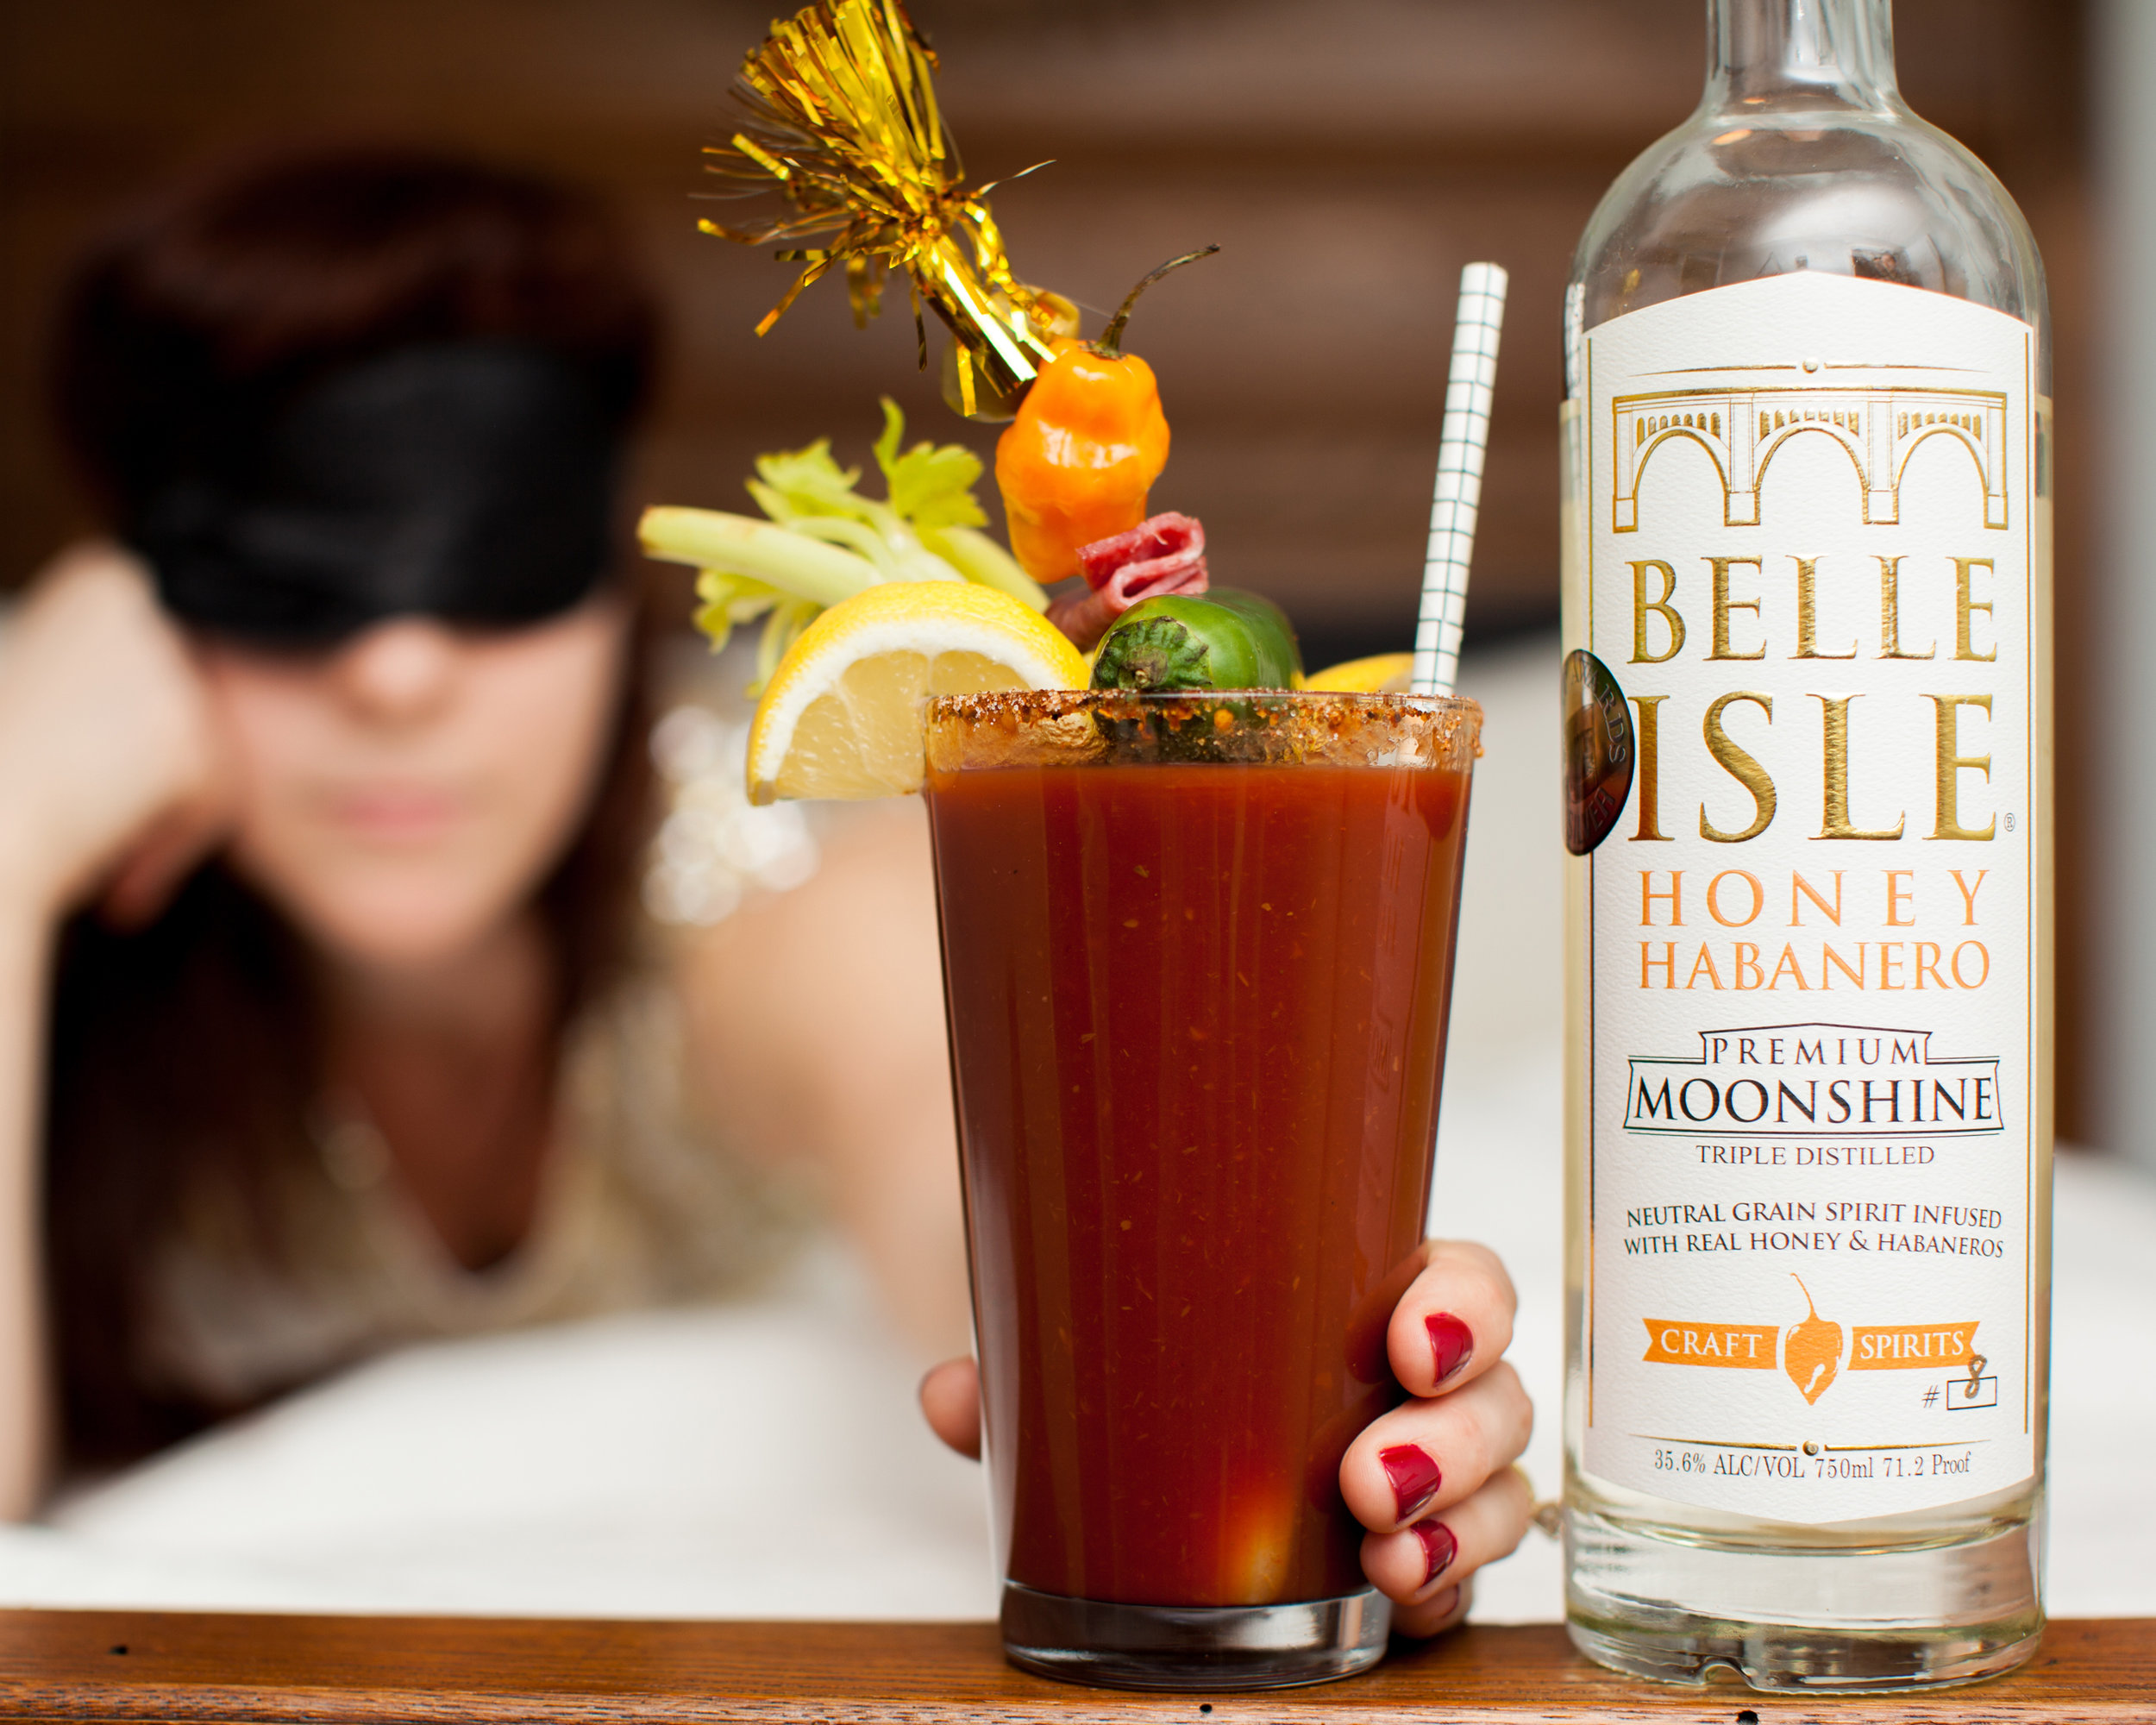 Our Spicy Moonshine Mary is the cure for whatever ails you.